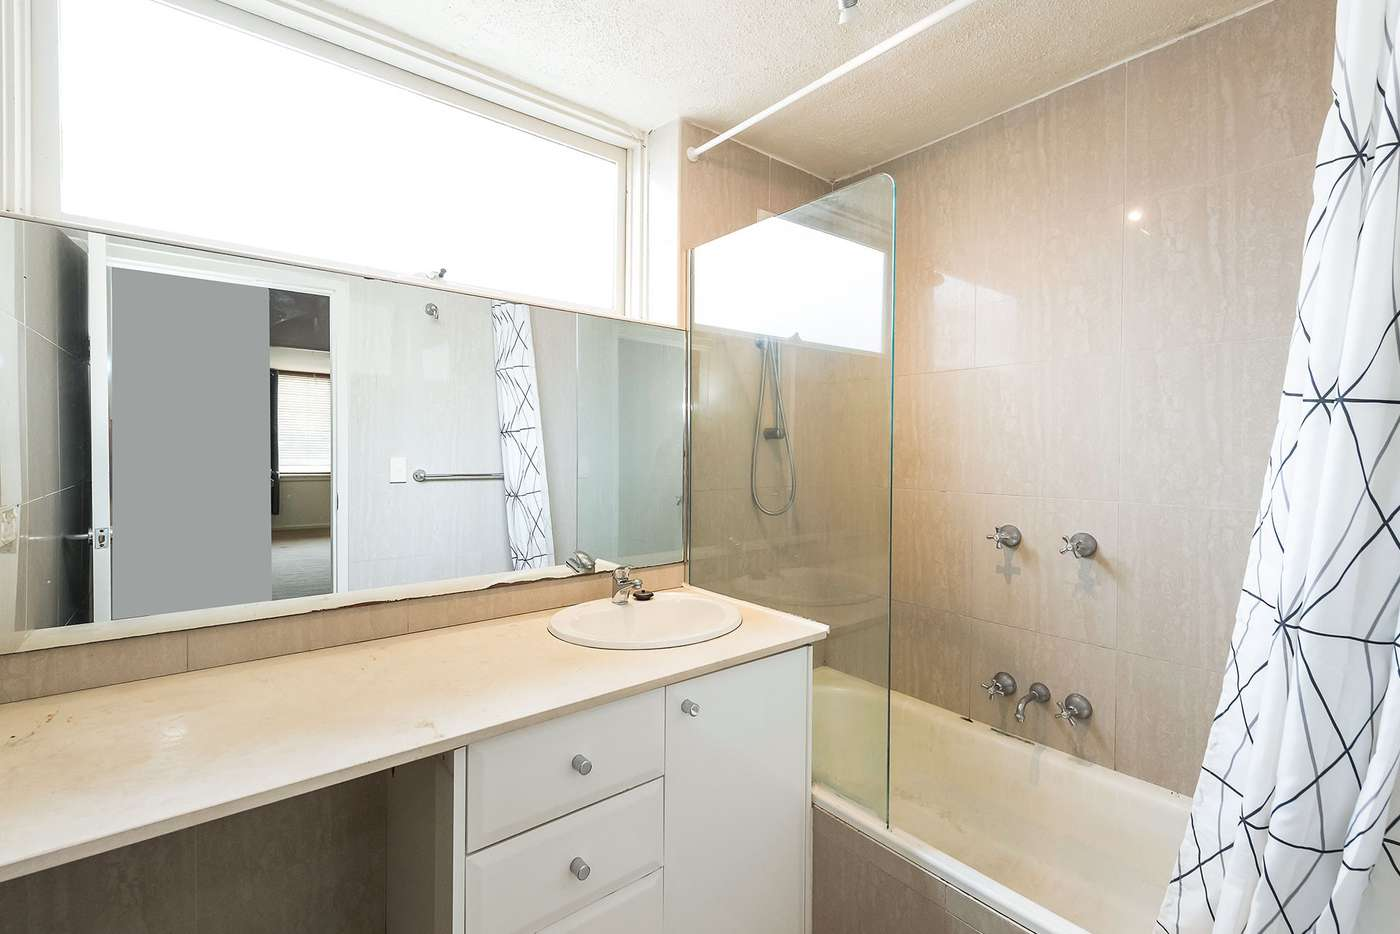 Sixth view of Homely apartment listing, 6/81 Alma Road, St Kilda VIC 3182